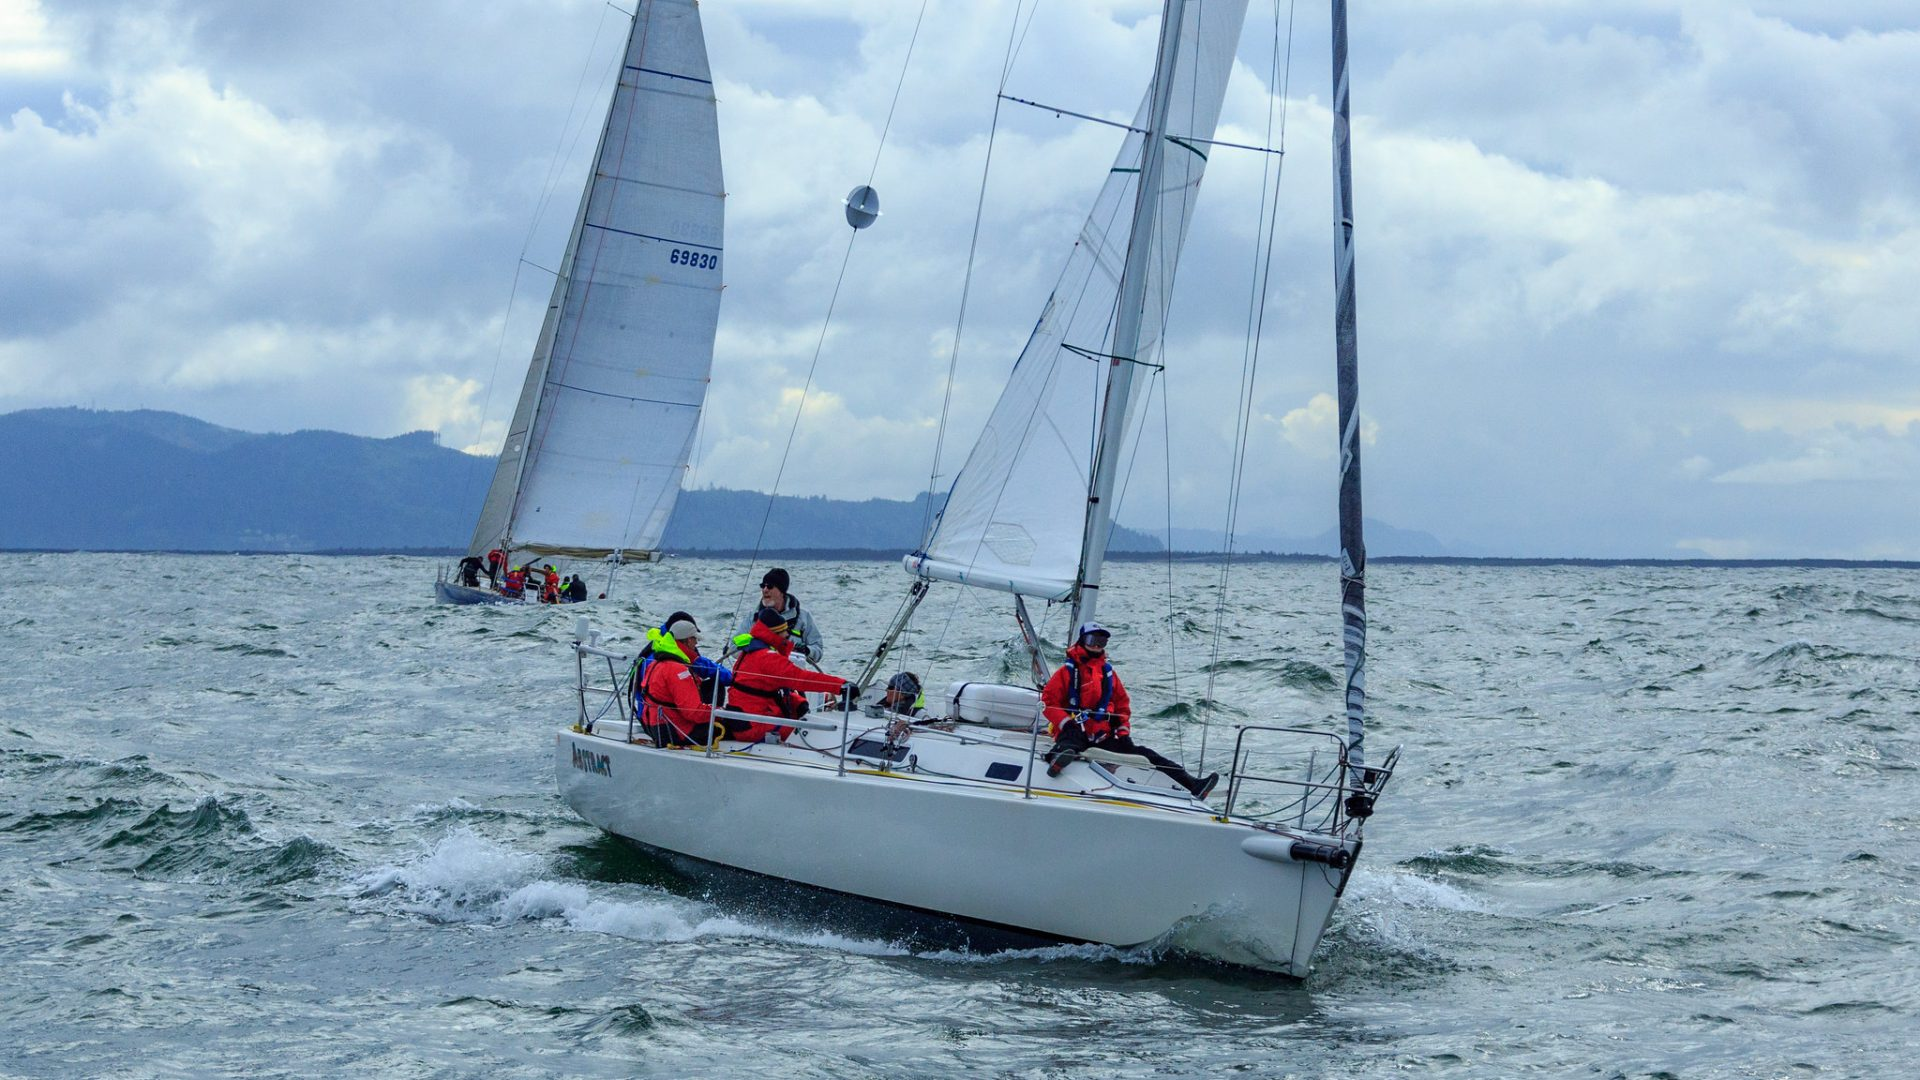 Pacific NW Offshore International Yacht Race